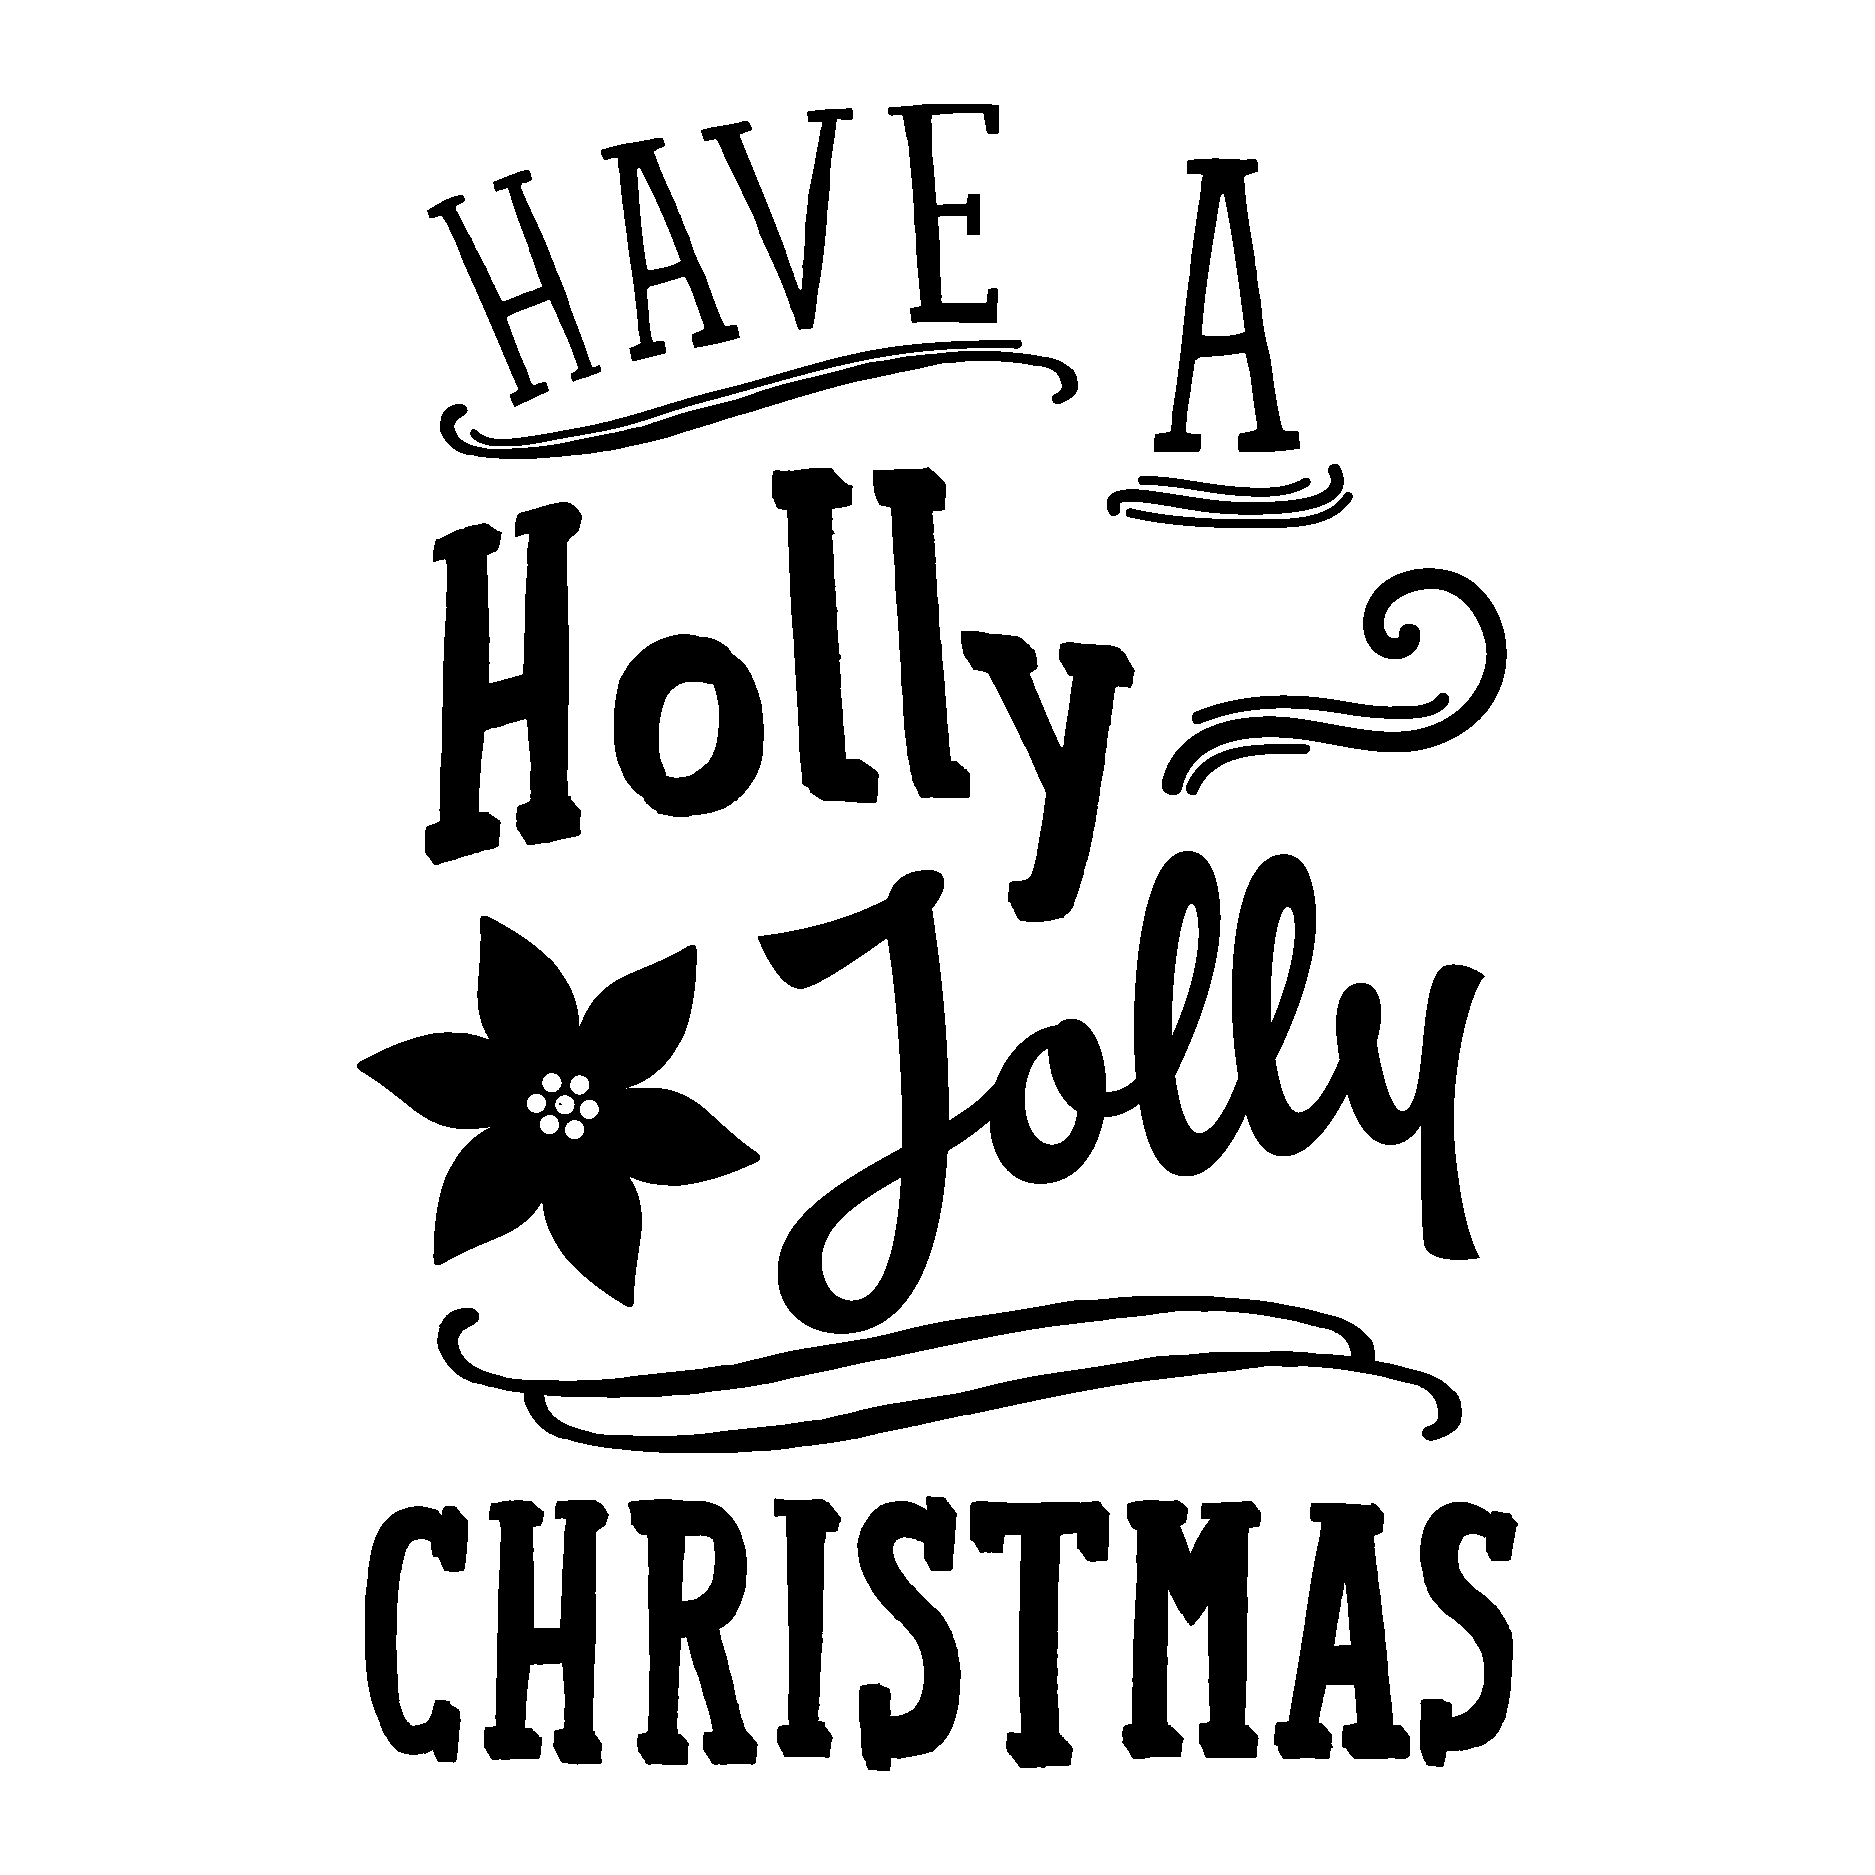 Holly Jolly Christmas Wall Quotes Decal